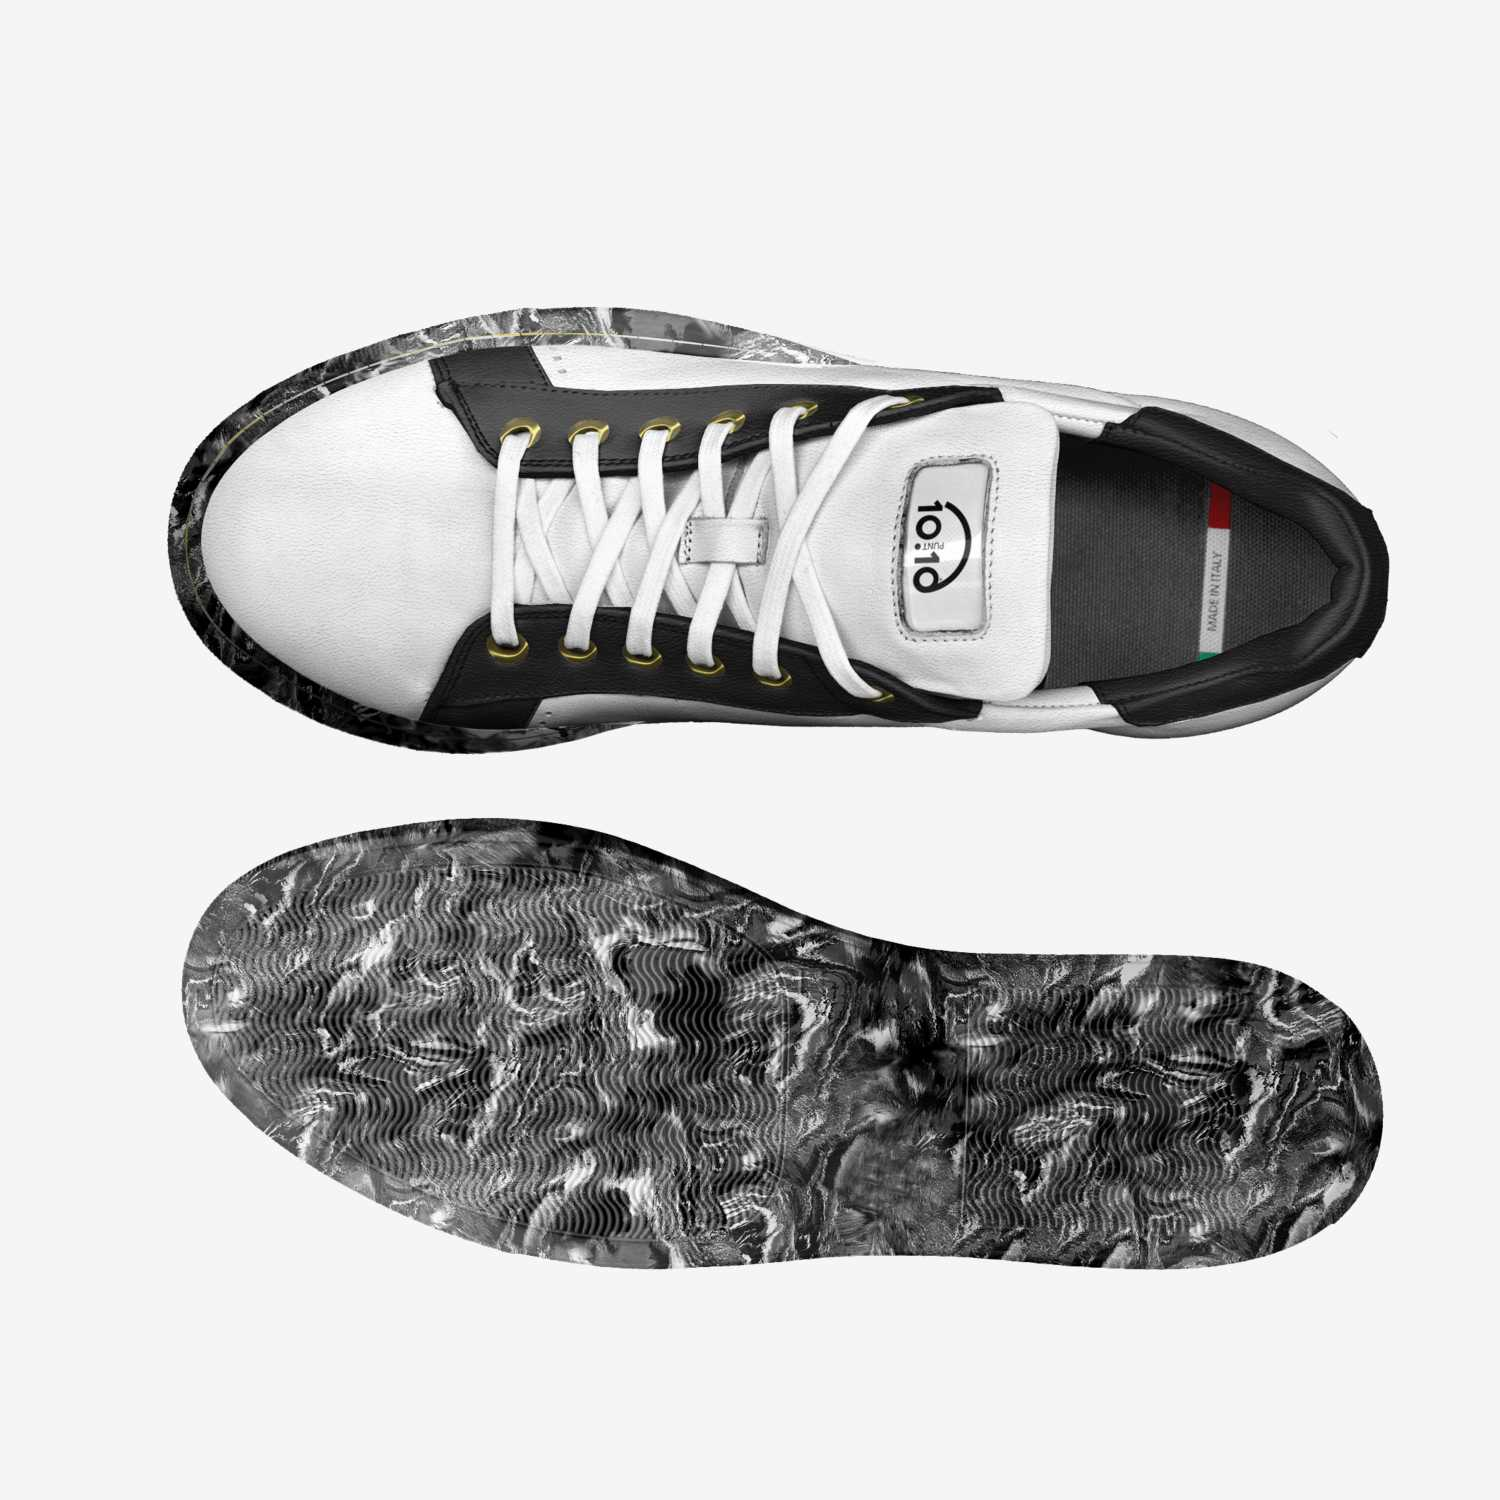 Pure Marble #10 Alceste Shoes alcesteshoes pure marble 10 shoes top bottom